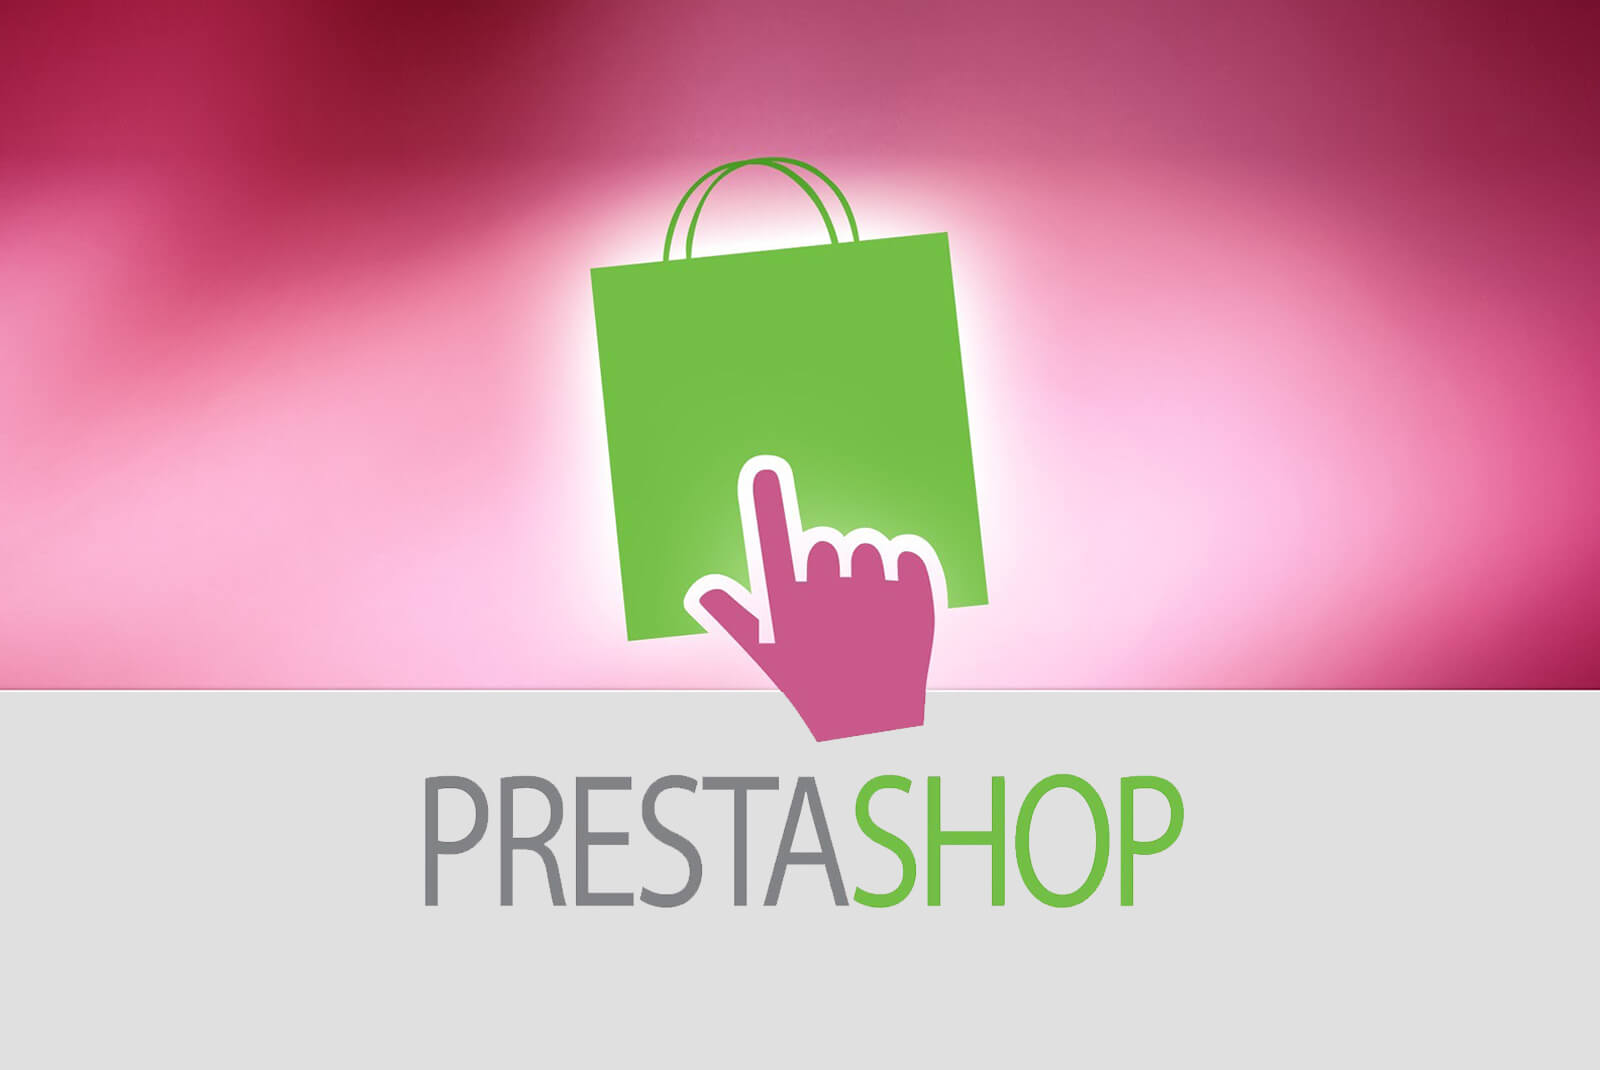 Prestashop Ecommerce Development & Customization